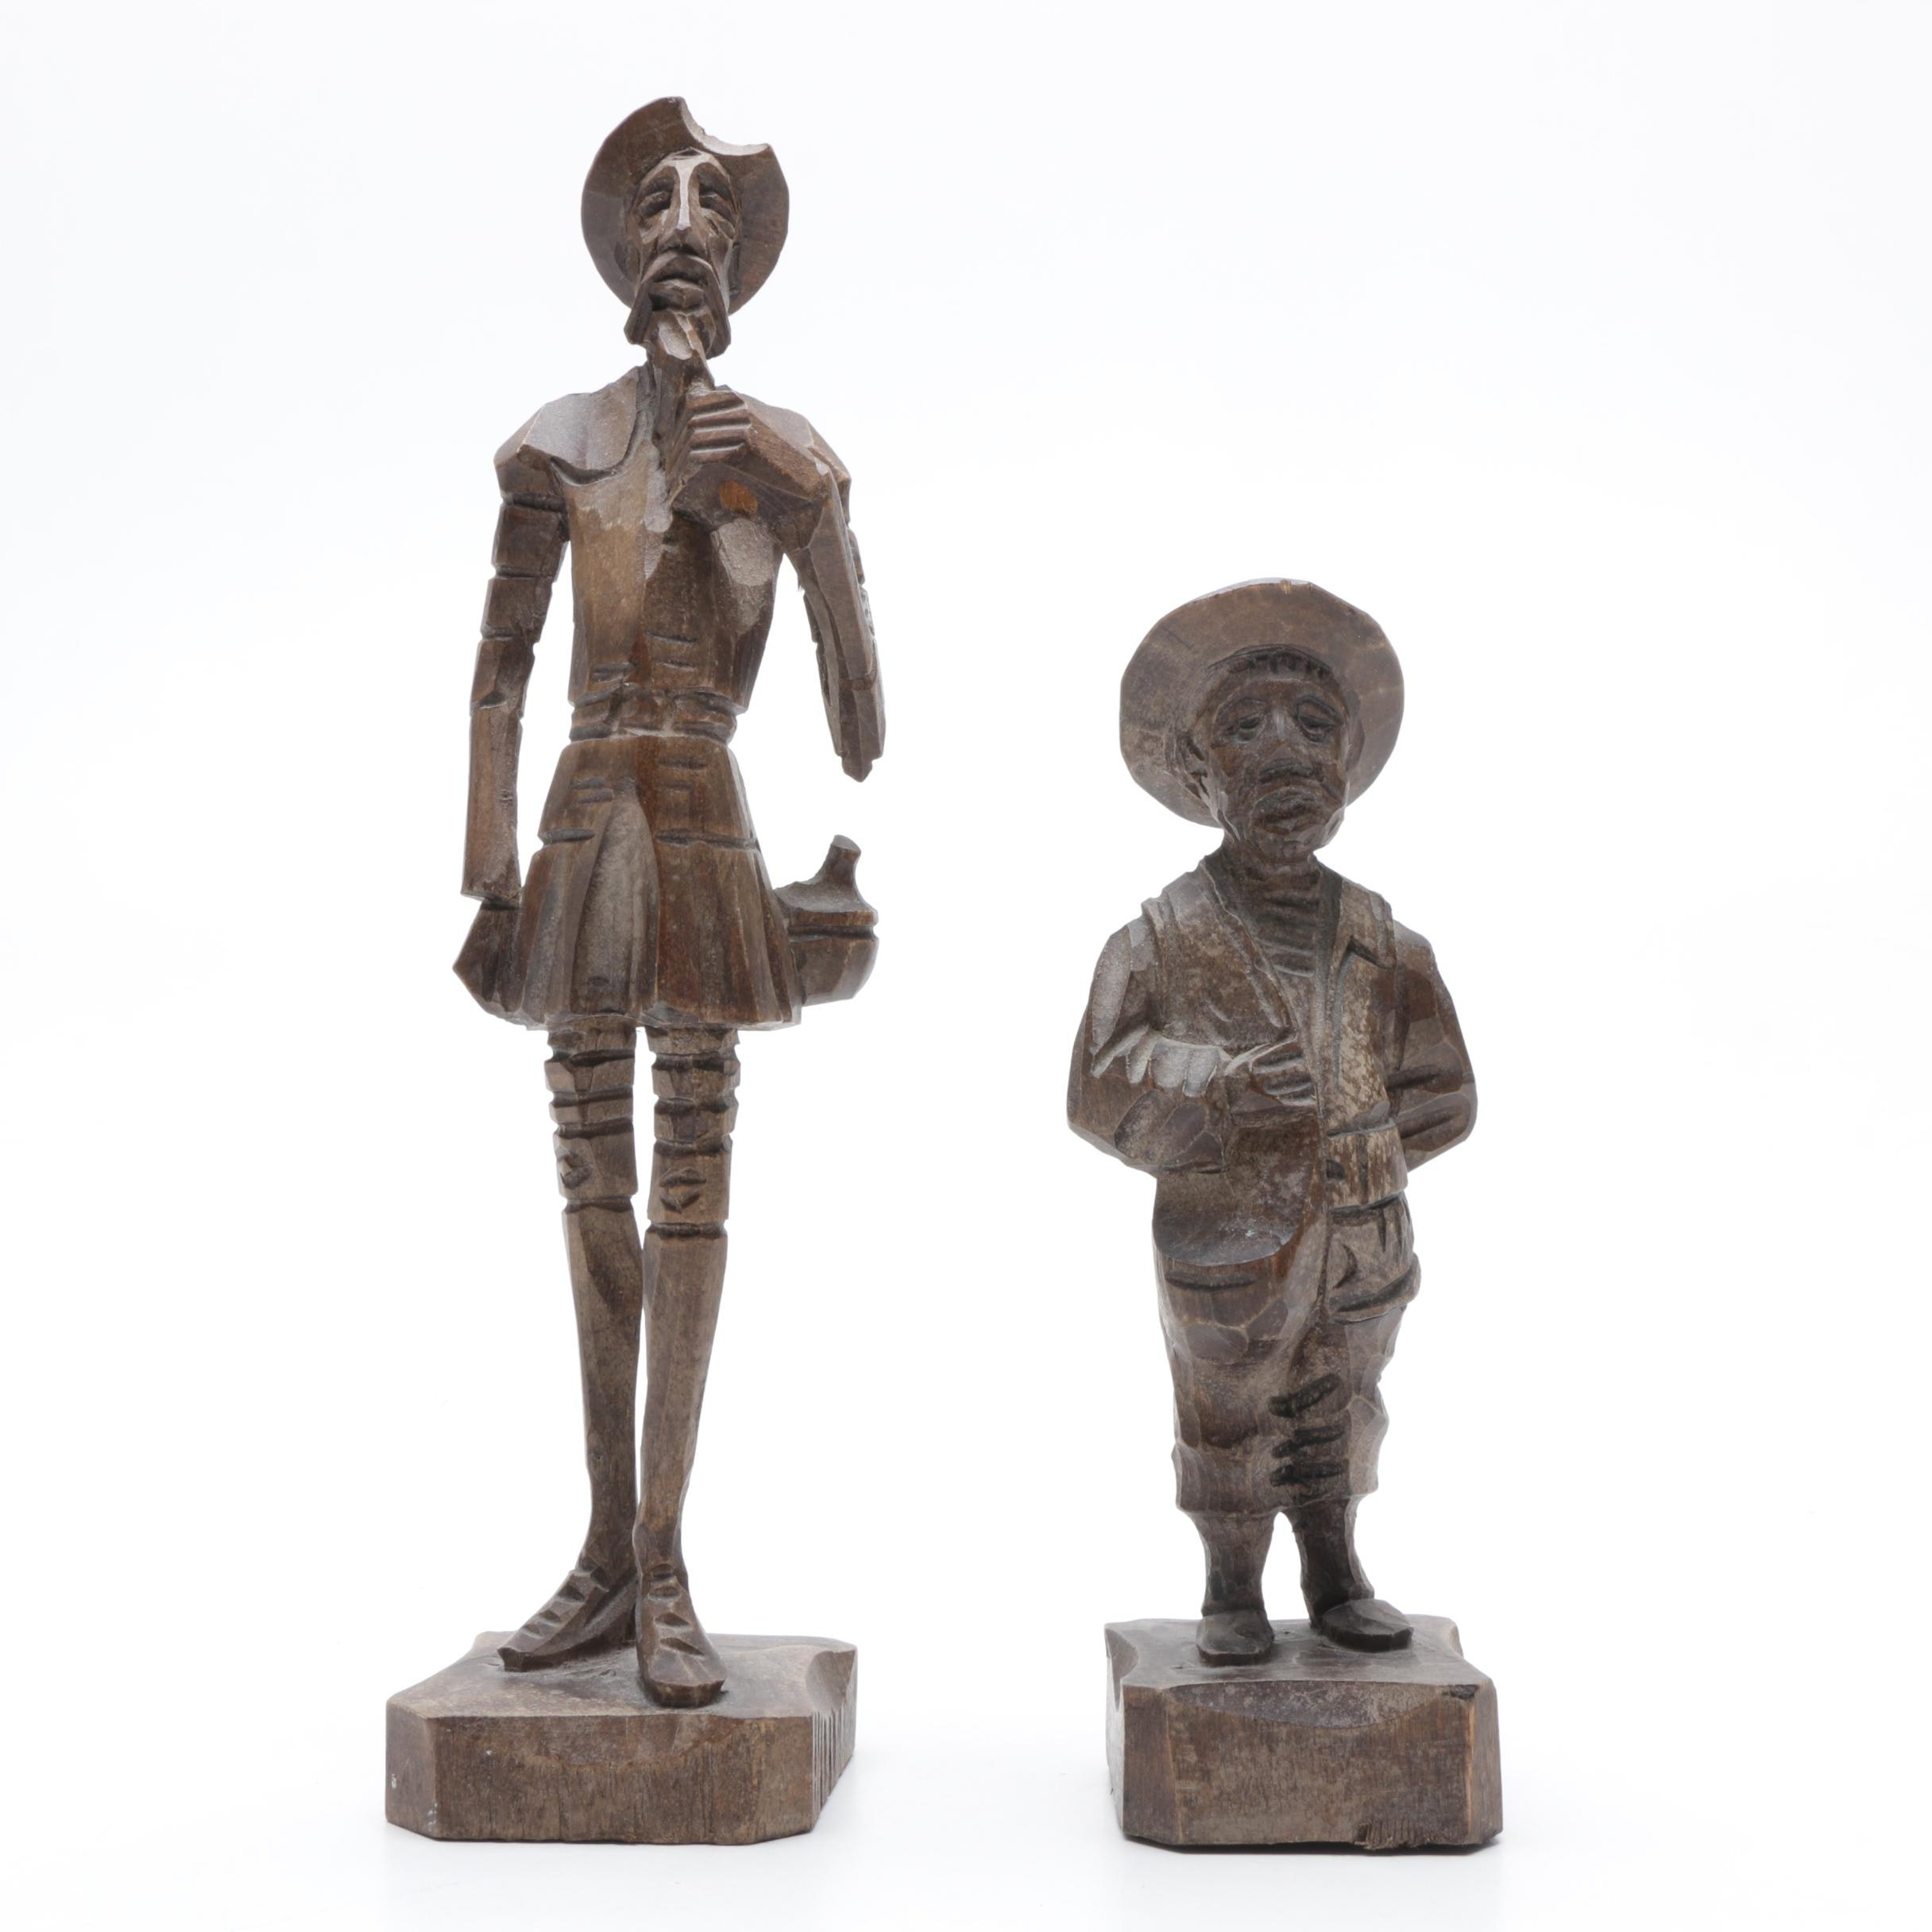 Decorative Hand Carved Wooden Figurines